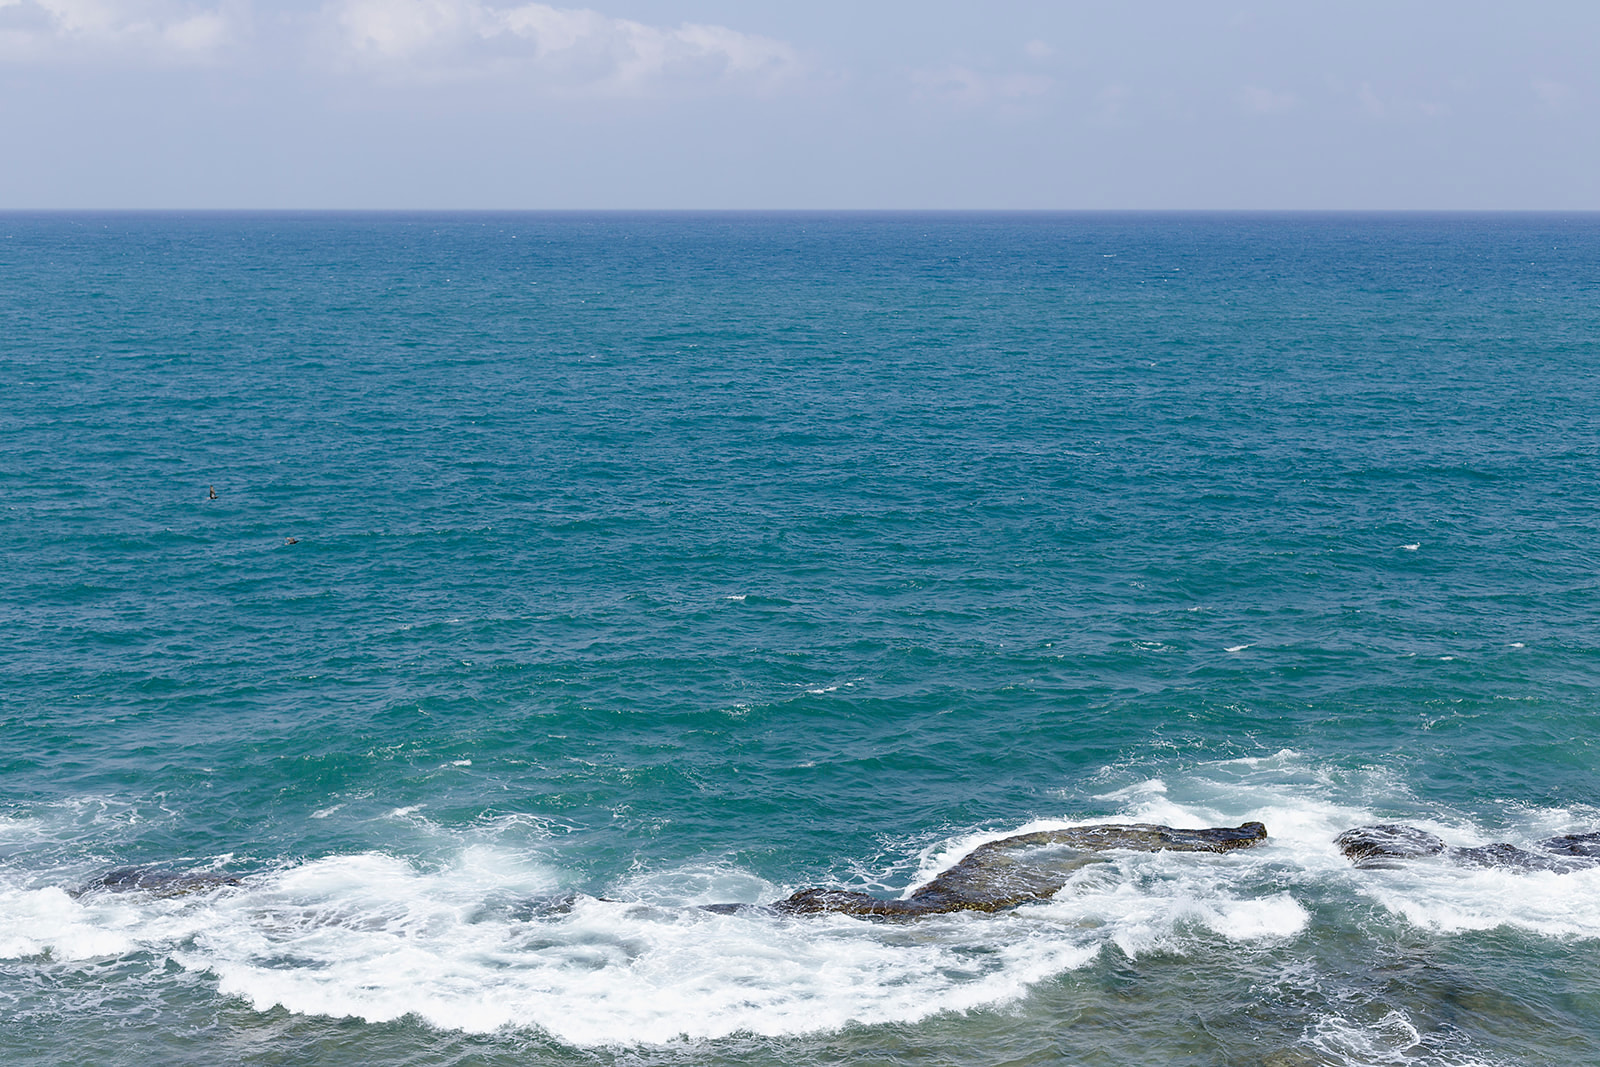 Acre, Akko, Israel, Sea, View, Waves, Holiday, Hotels, Travel, Airbnb, Vacation, Slow Travel